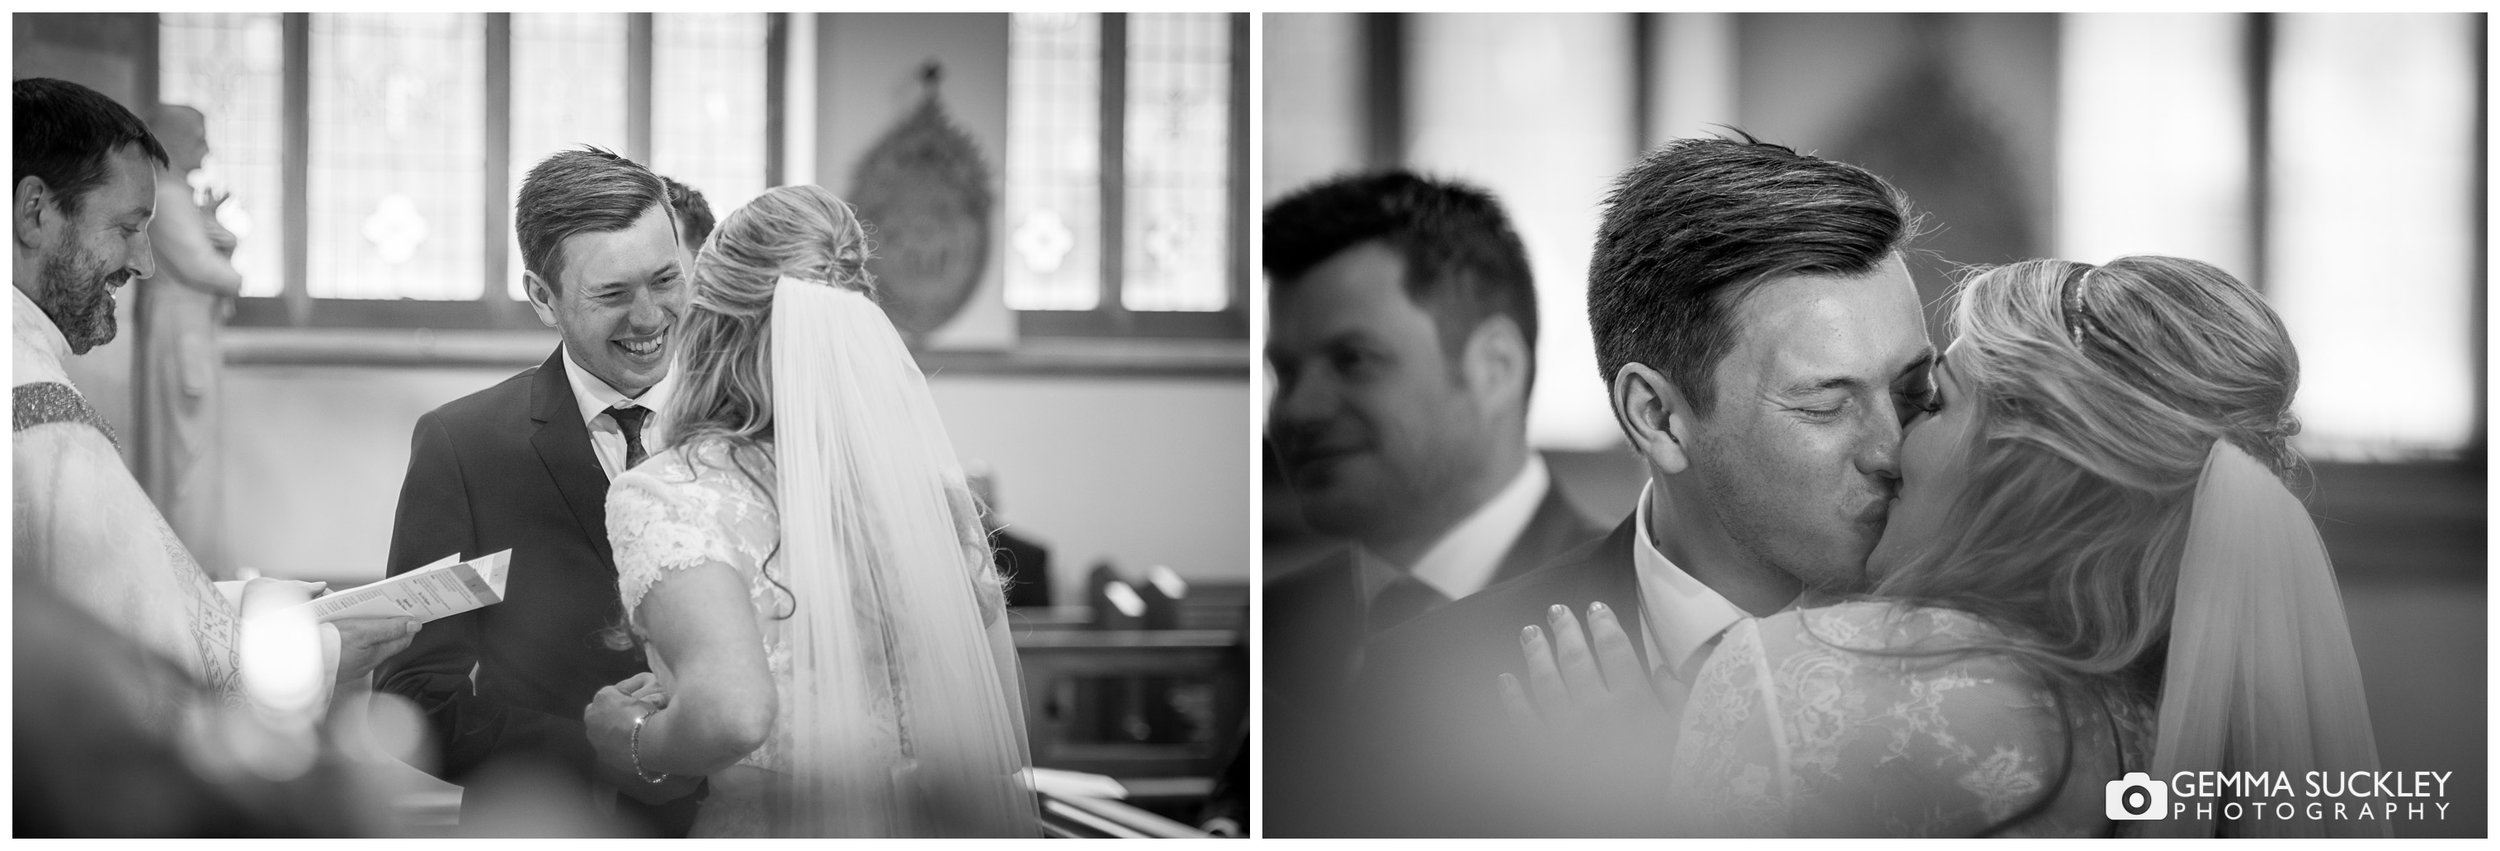 Harrogate-church wedding-©gemmasuckleyphotography.jpg